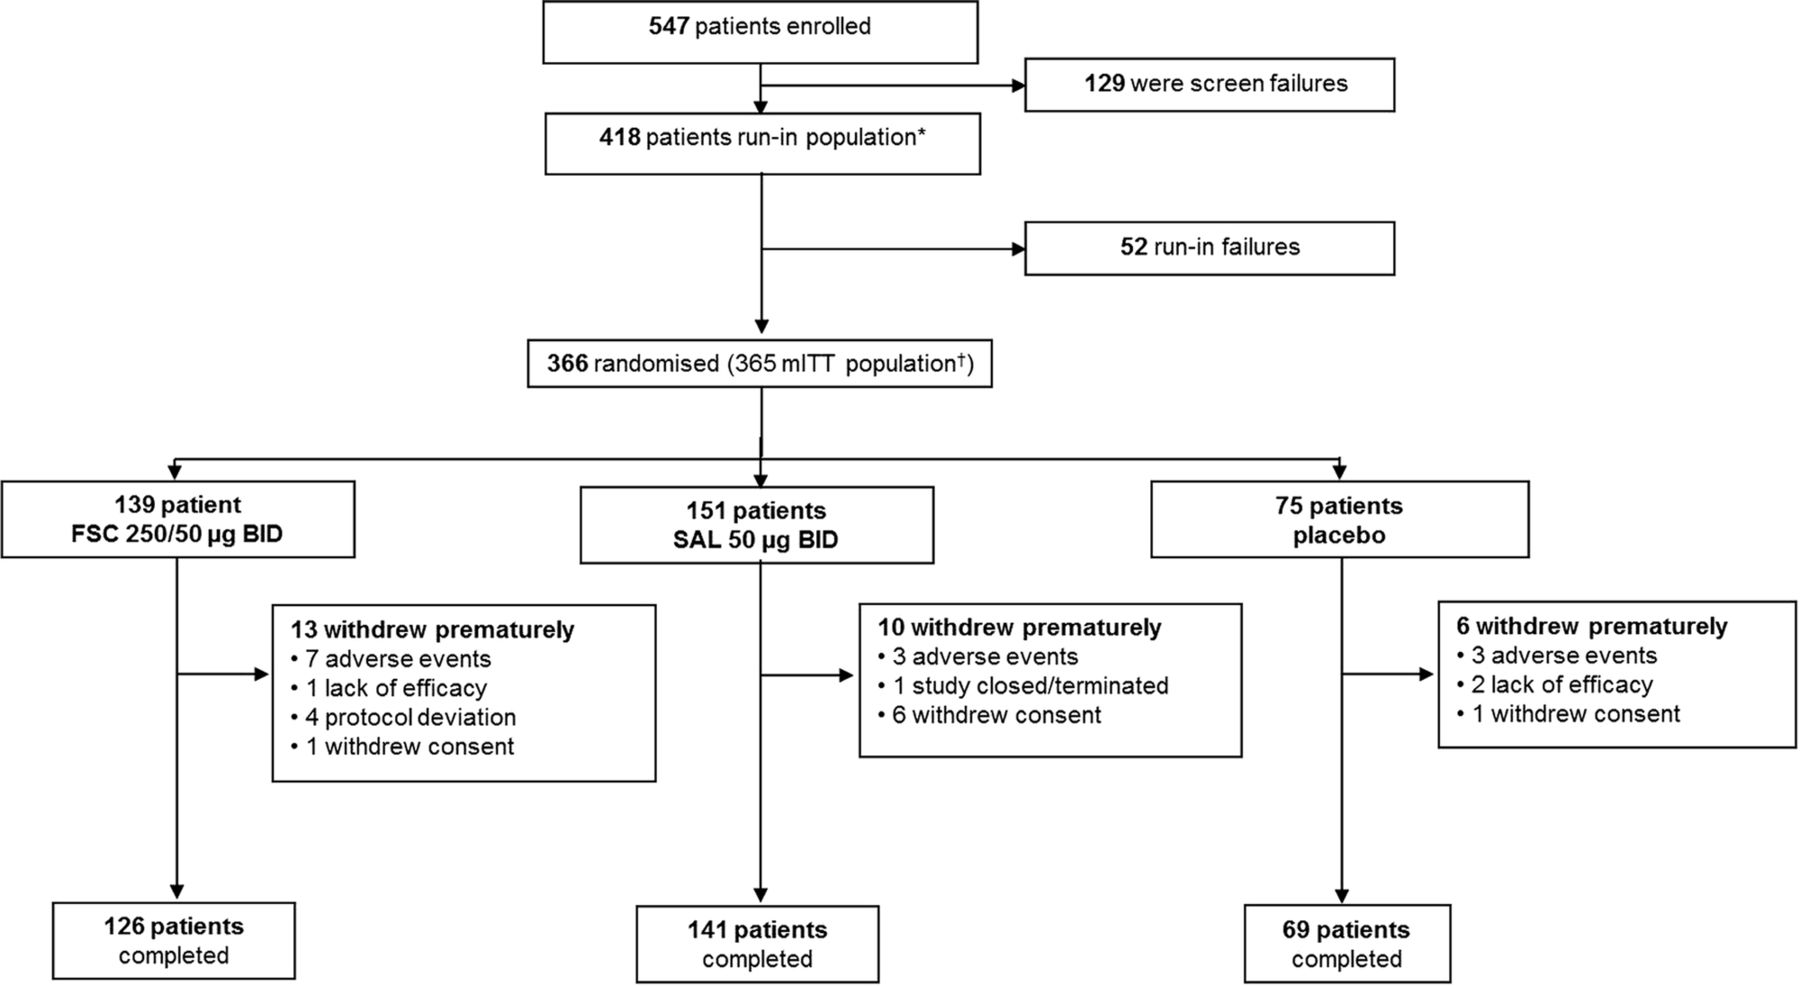 shortness of breath with daily activities questionnaire validation